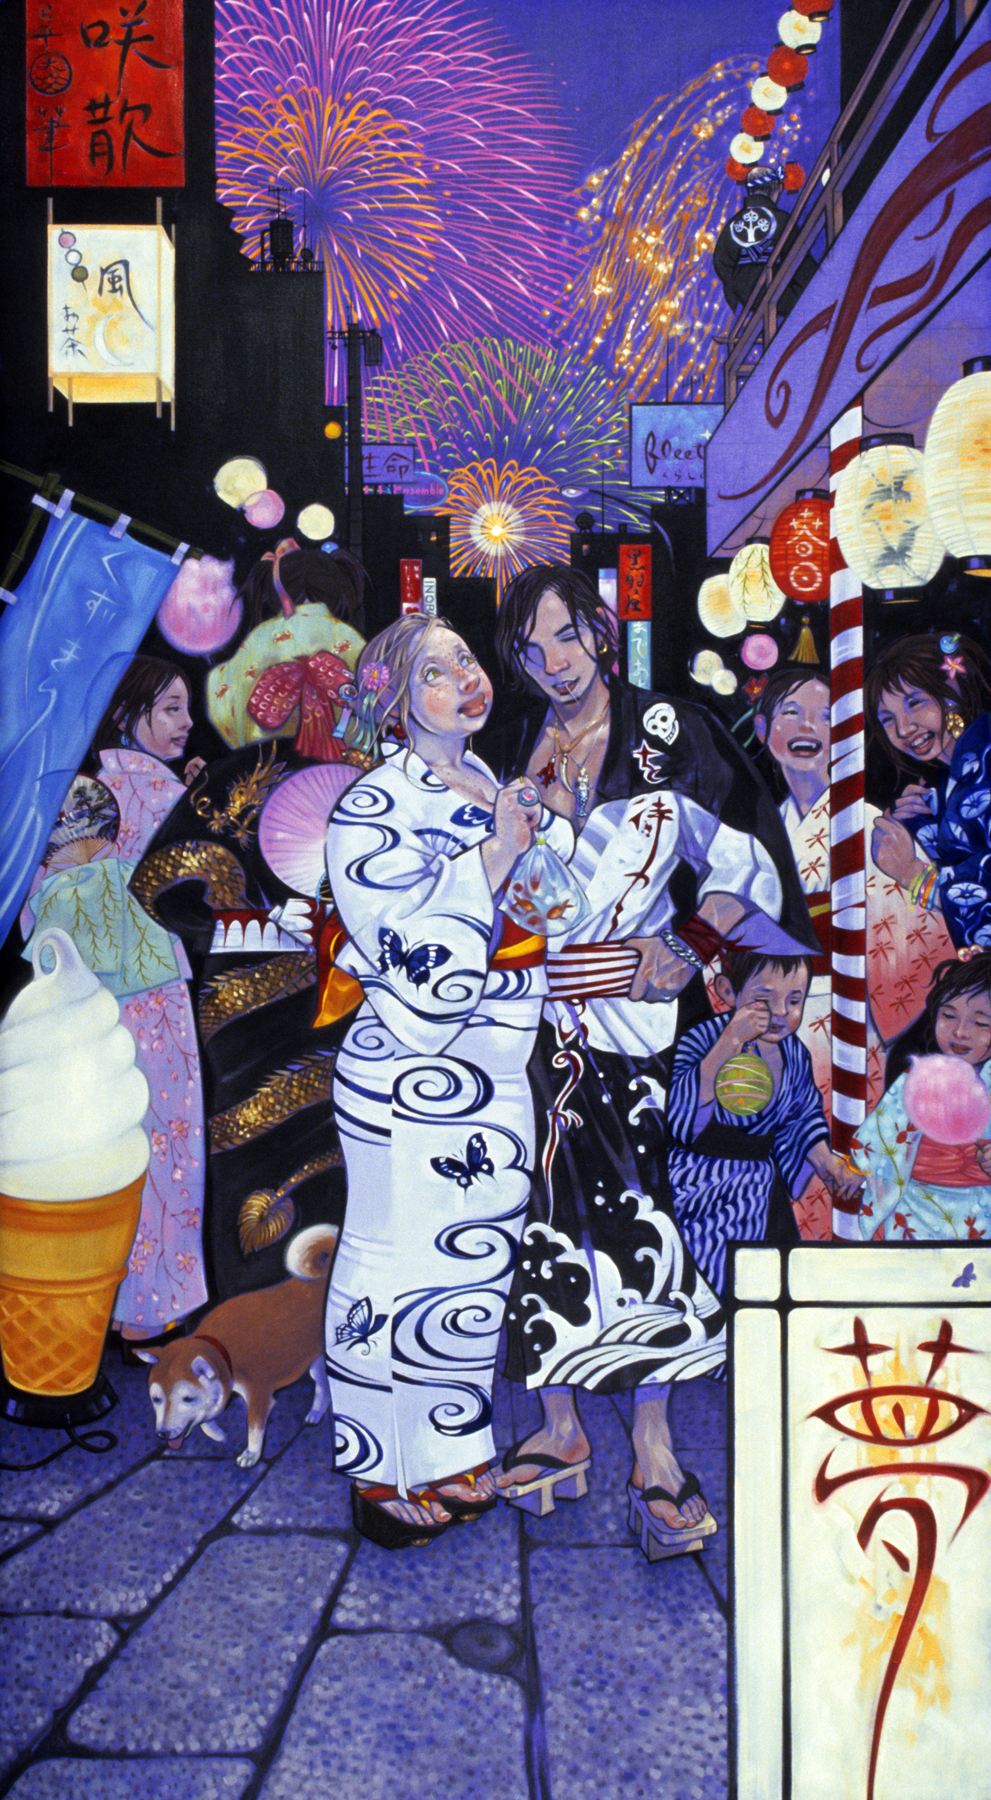 Shôsan (Bloom, Fade), 2006, oil on canvas, 84 x 46.5 inches